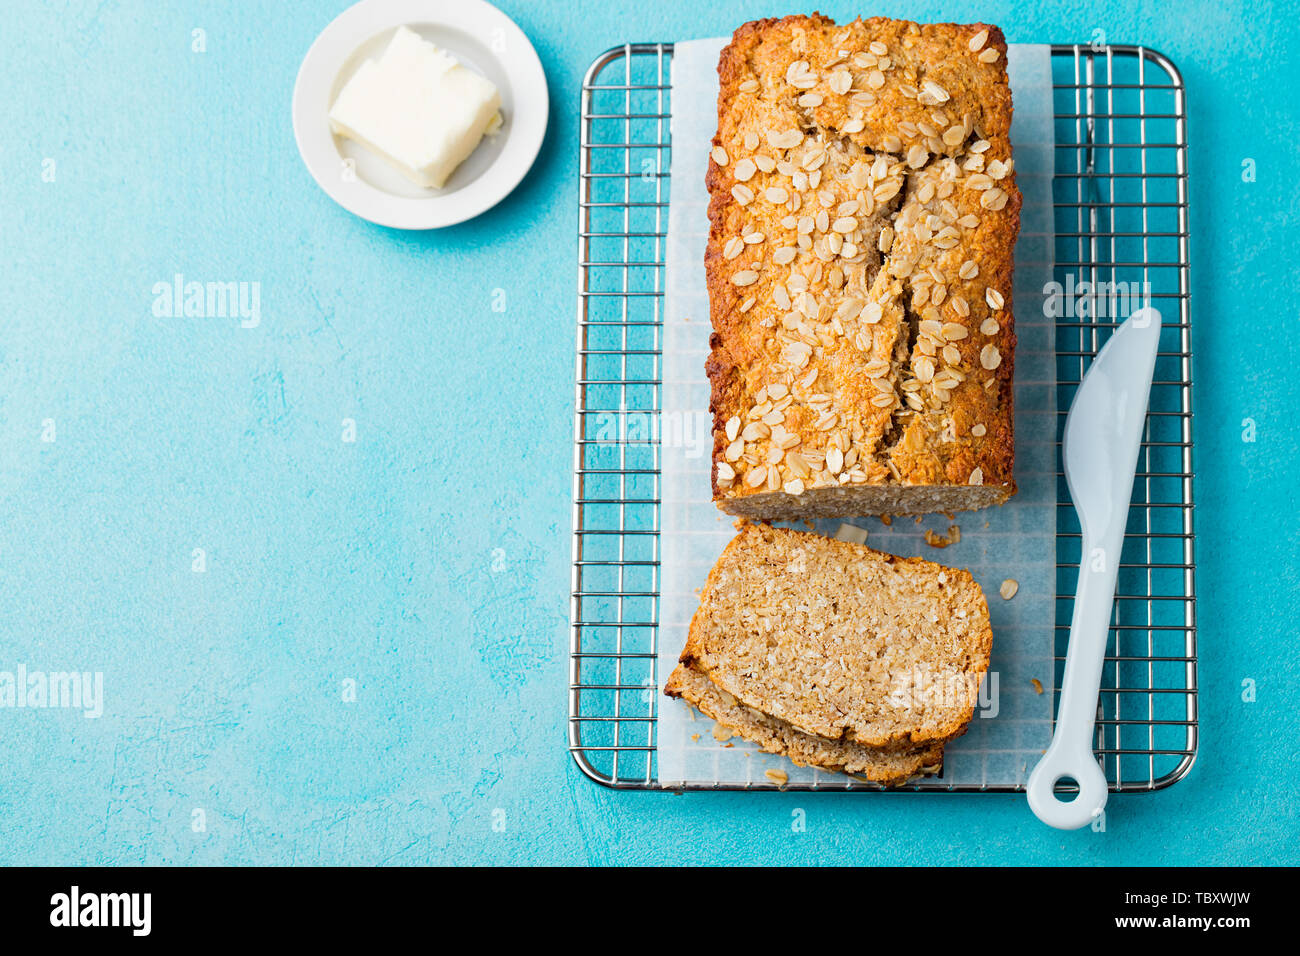 Healthy vegan oat, coconut loaf bread, cake on a cooling rack Blue background. Copy space. Top view. Stock Photo